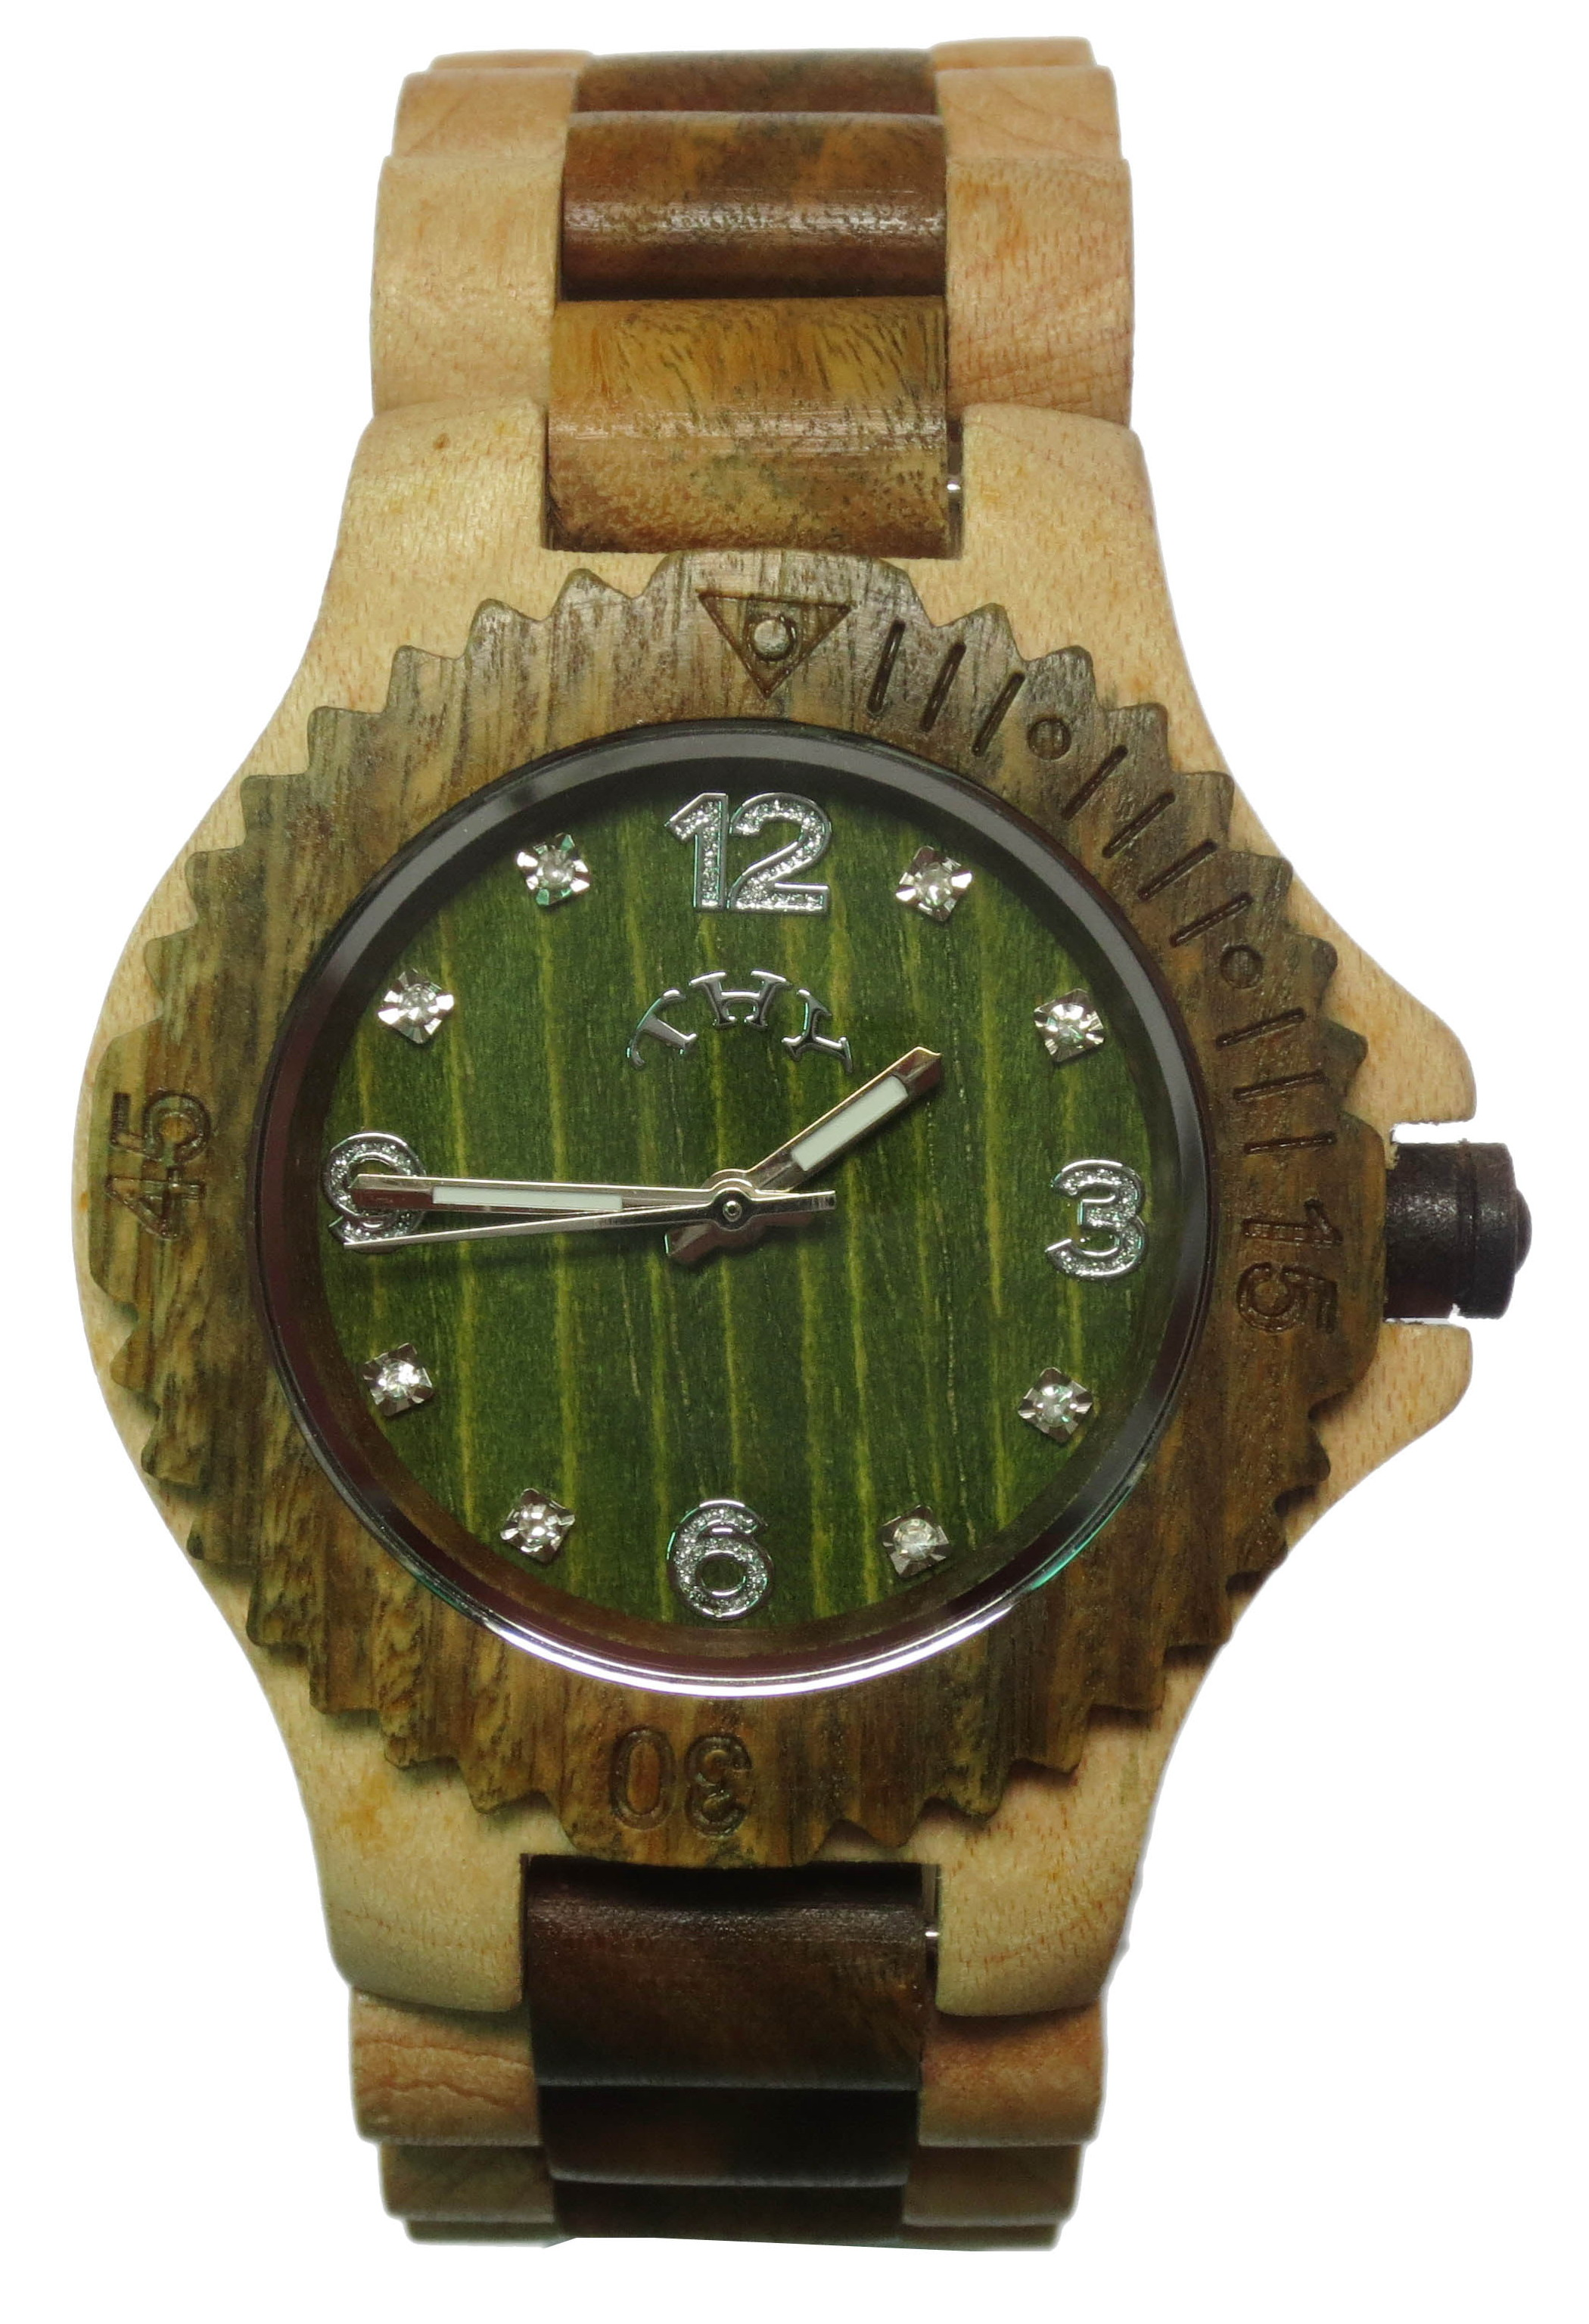 Mens Yellow and Brown 2-tone round green dial wooden watches with 40 MM size W00018